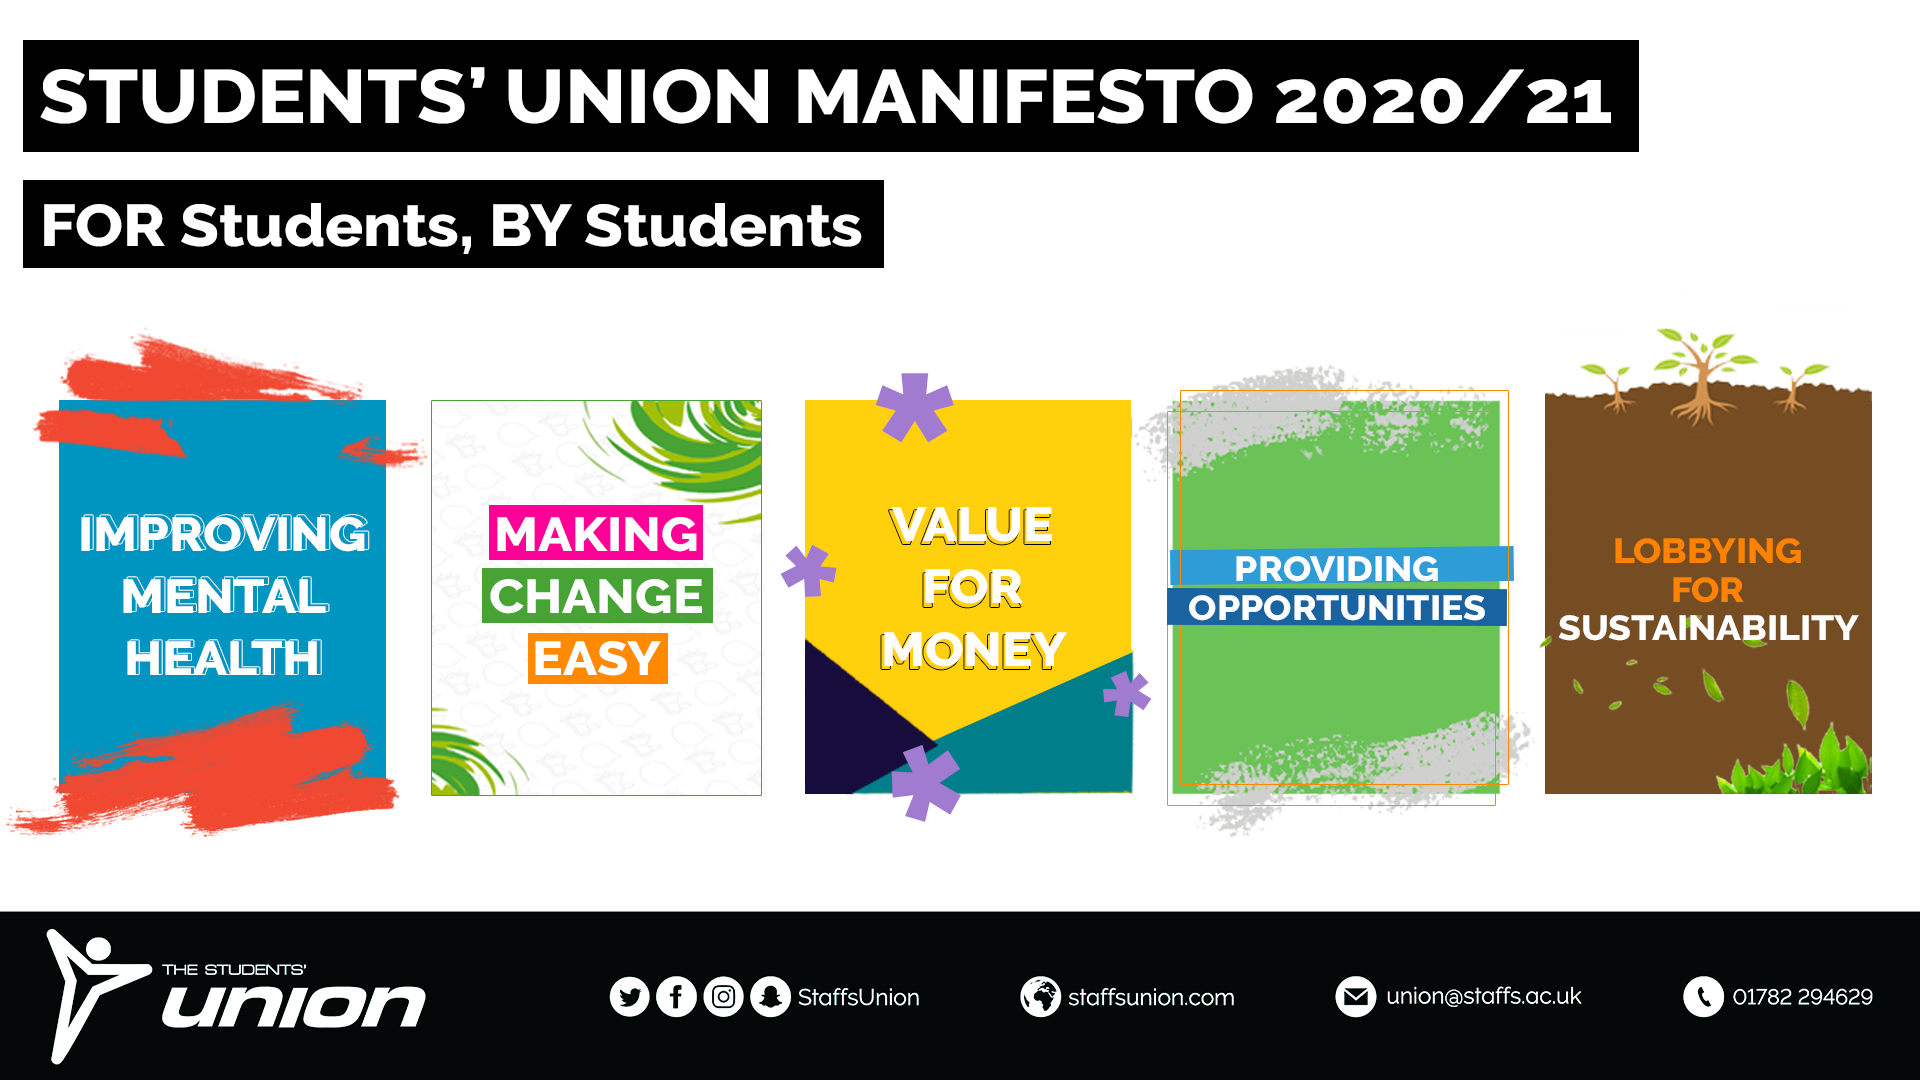 Students' Union manifesto 2020/21, for students by students